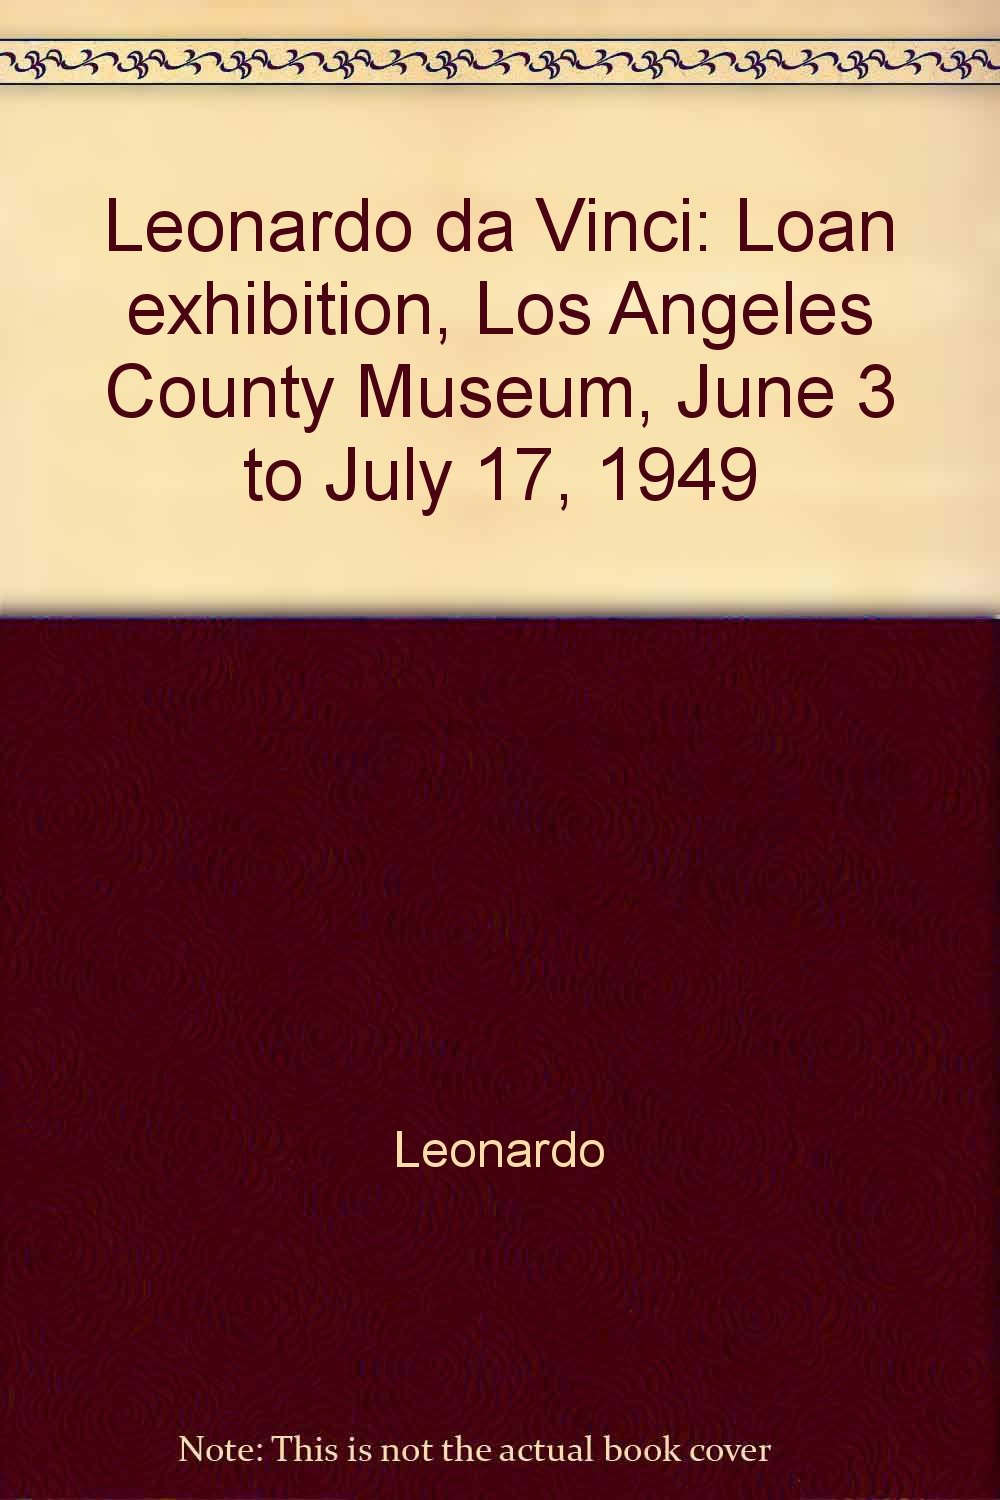 leonardo da vinci loan exhibition los angeles county museum june 3 to july 17 1949